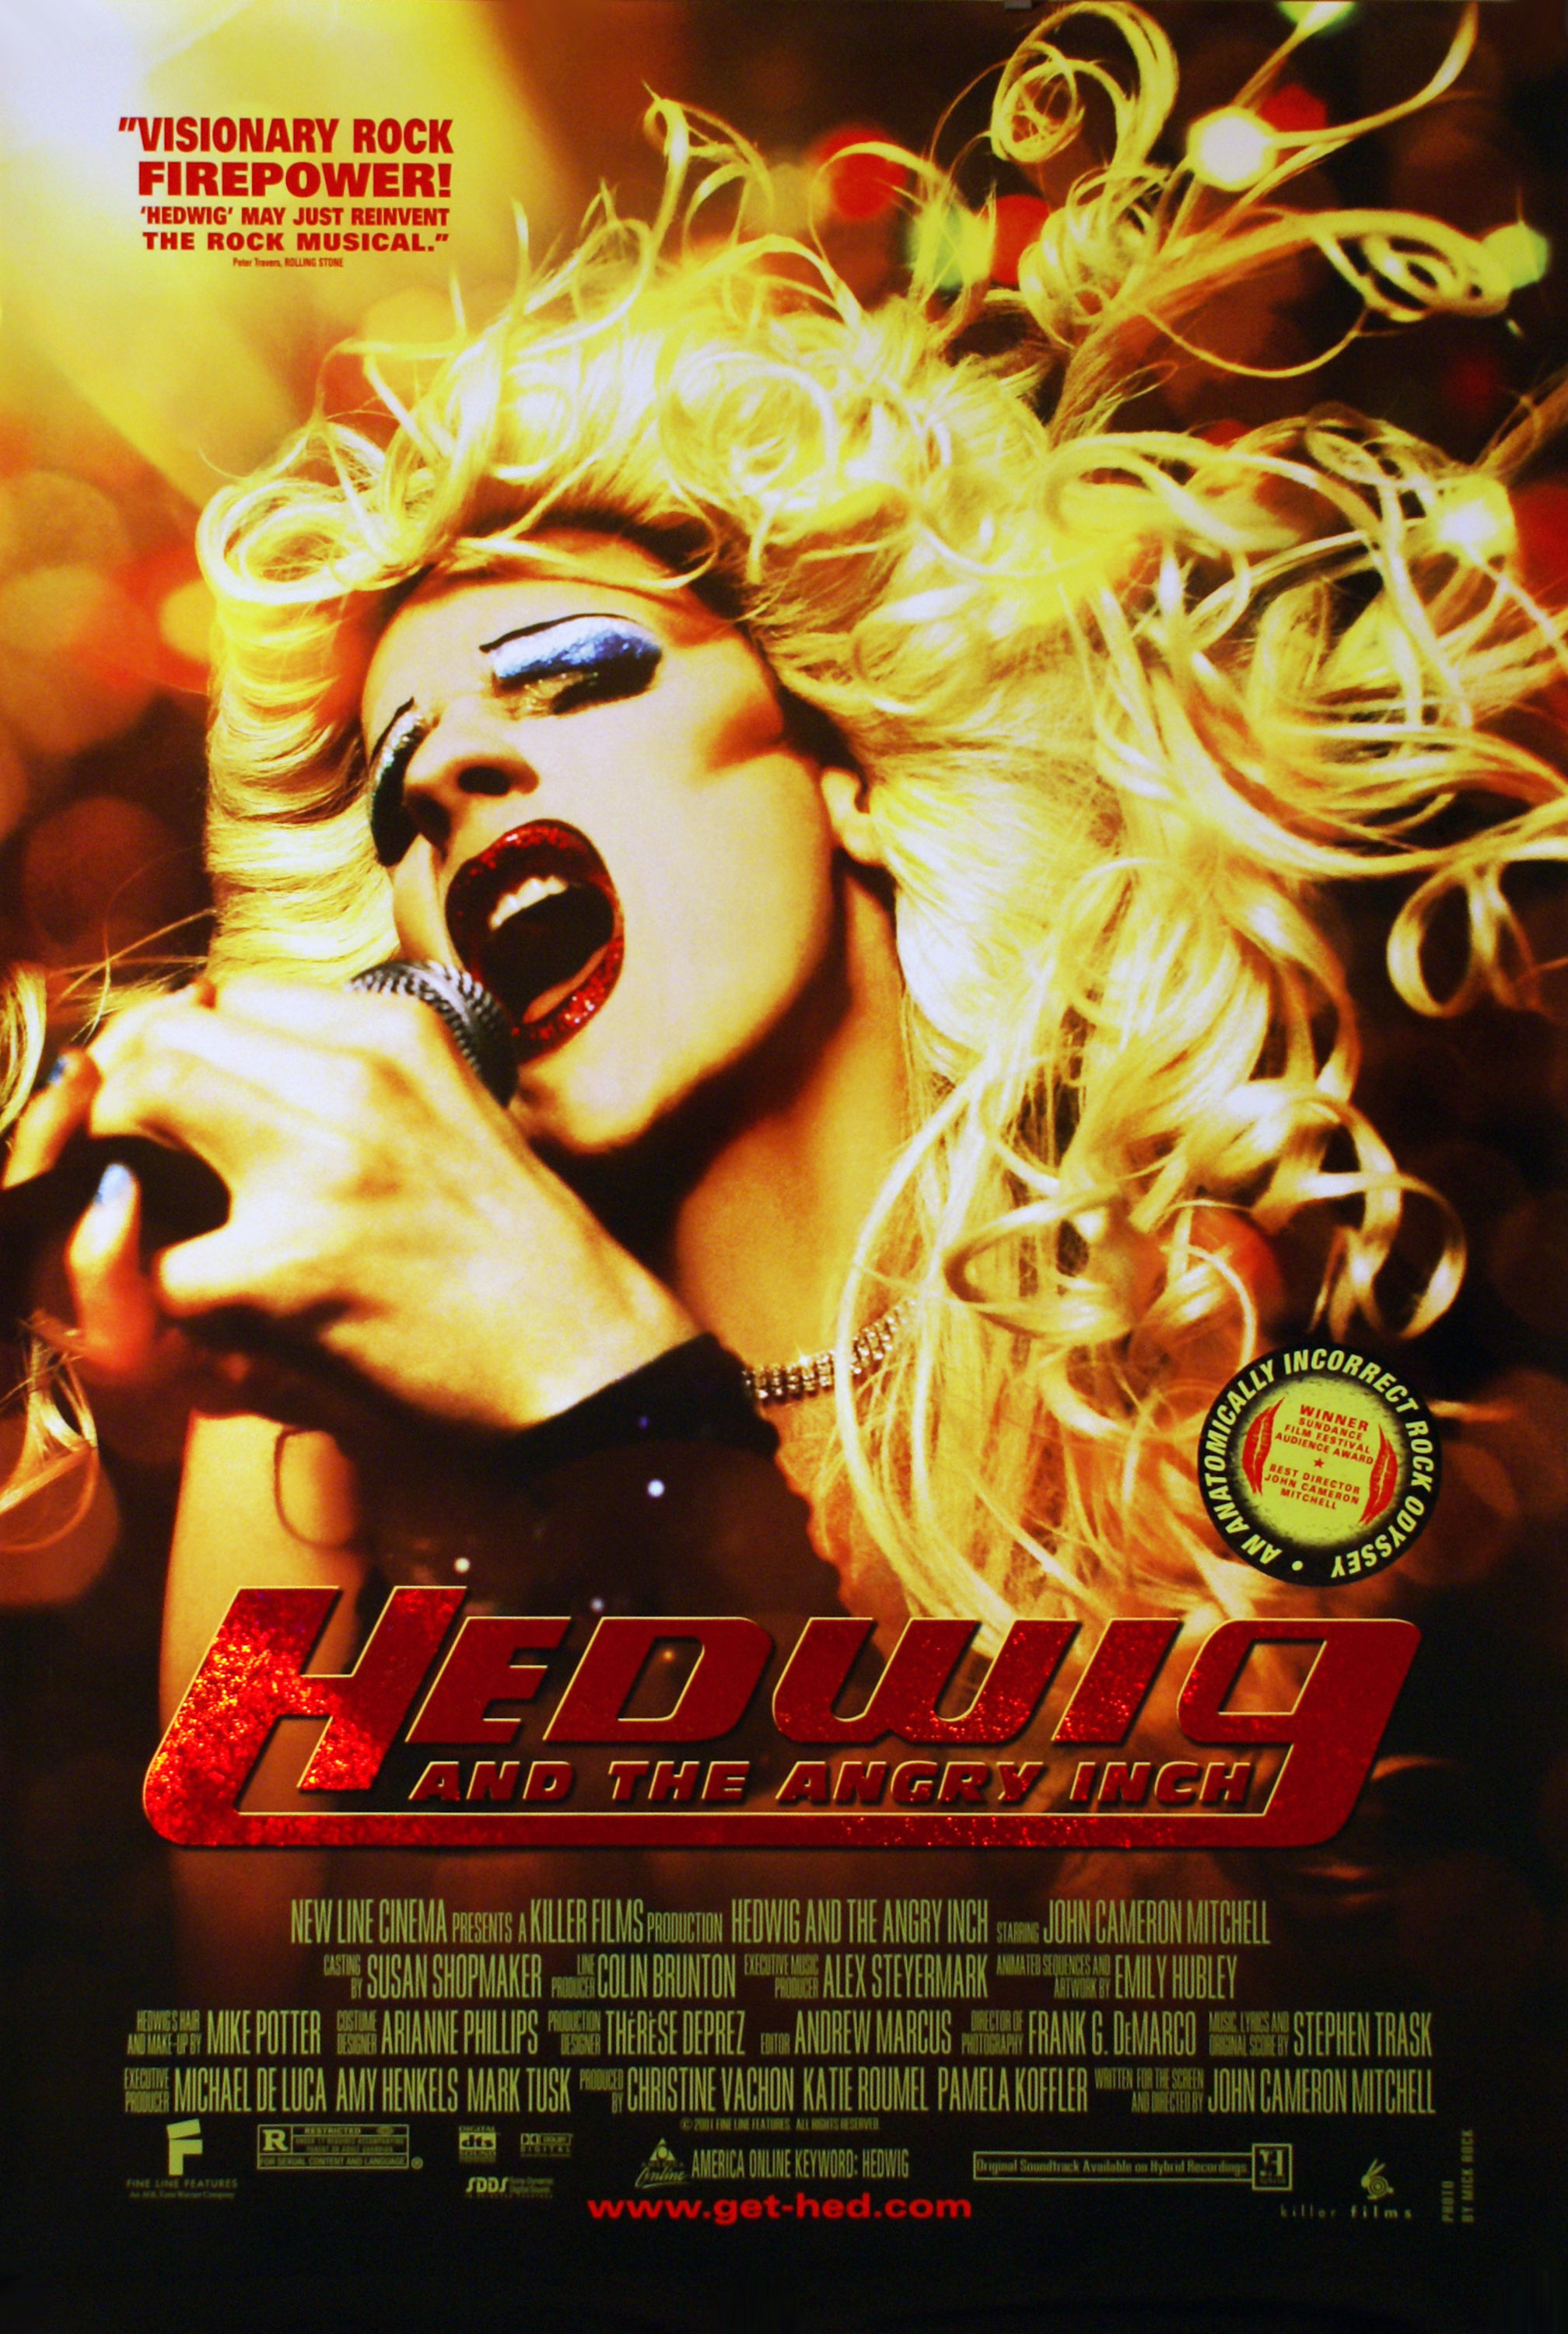 Hedwig and the Angry Inch (2001) - Directed by: John Cameron MitchellStarring: John Cameron Mitchell, Miriam Shor, Michael PittRated: R for Sexual Content and LanguageRunning Time: 1 h 35 mTMM Score: 4.5 stars out of 5STRENGTHS: Soundtrack, Writing, ActingWEAKNESSES: Subject Matter Will Turn Away Some Viewers